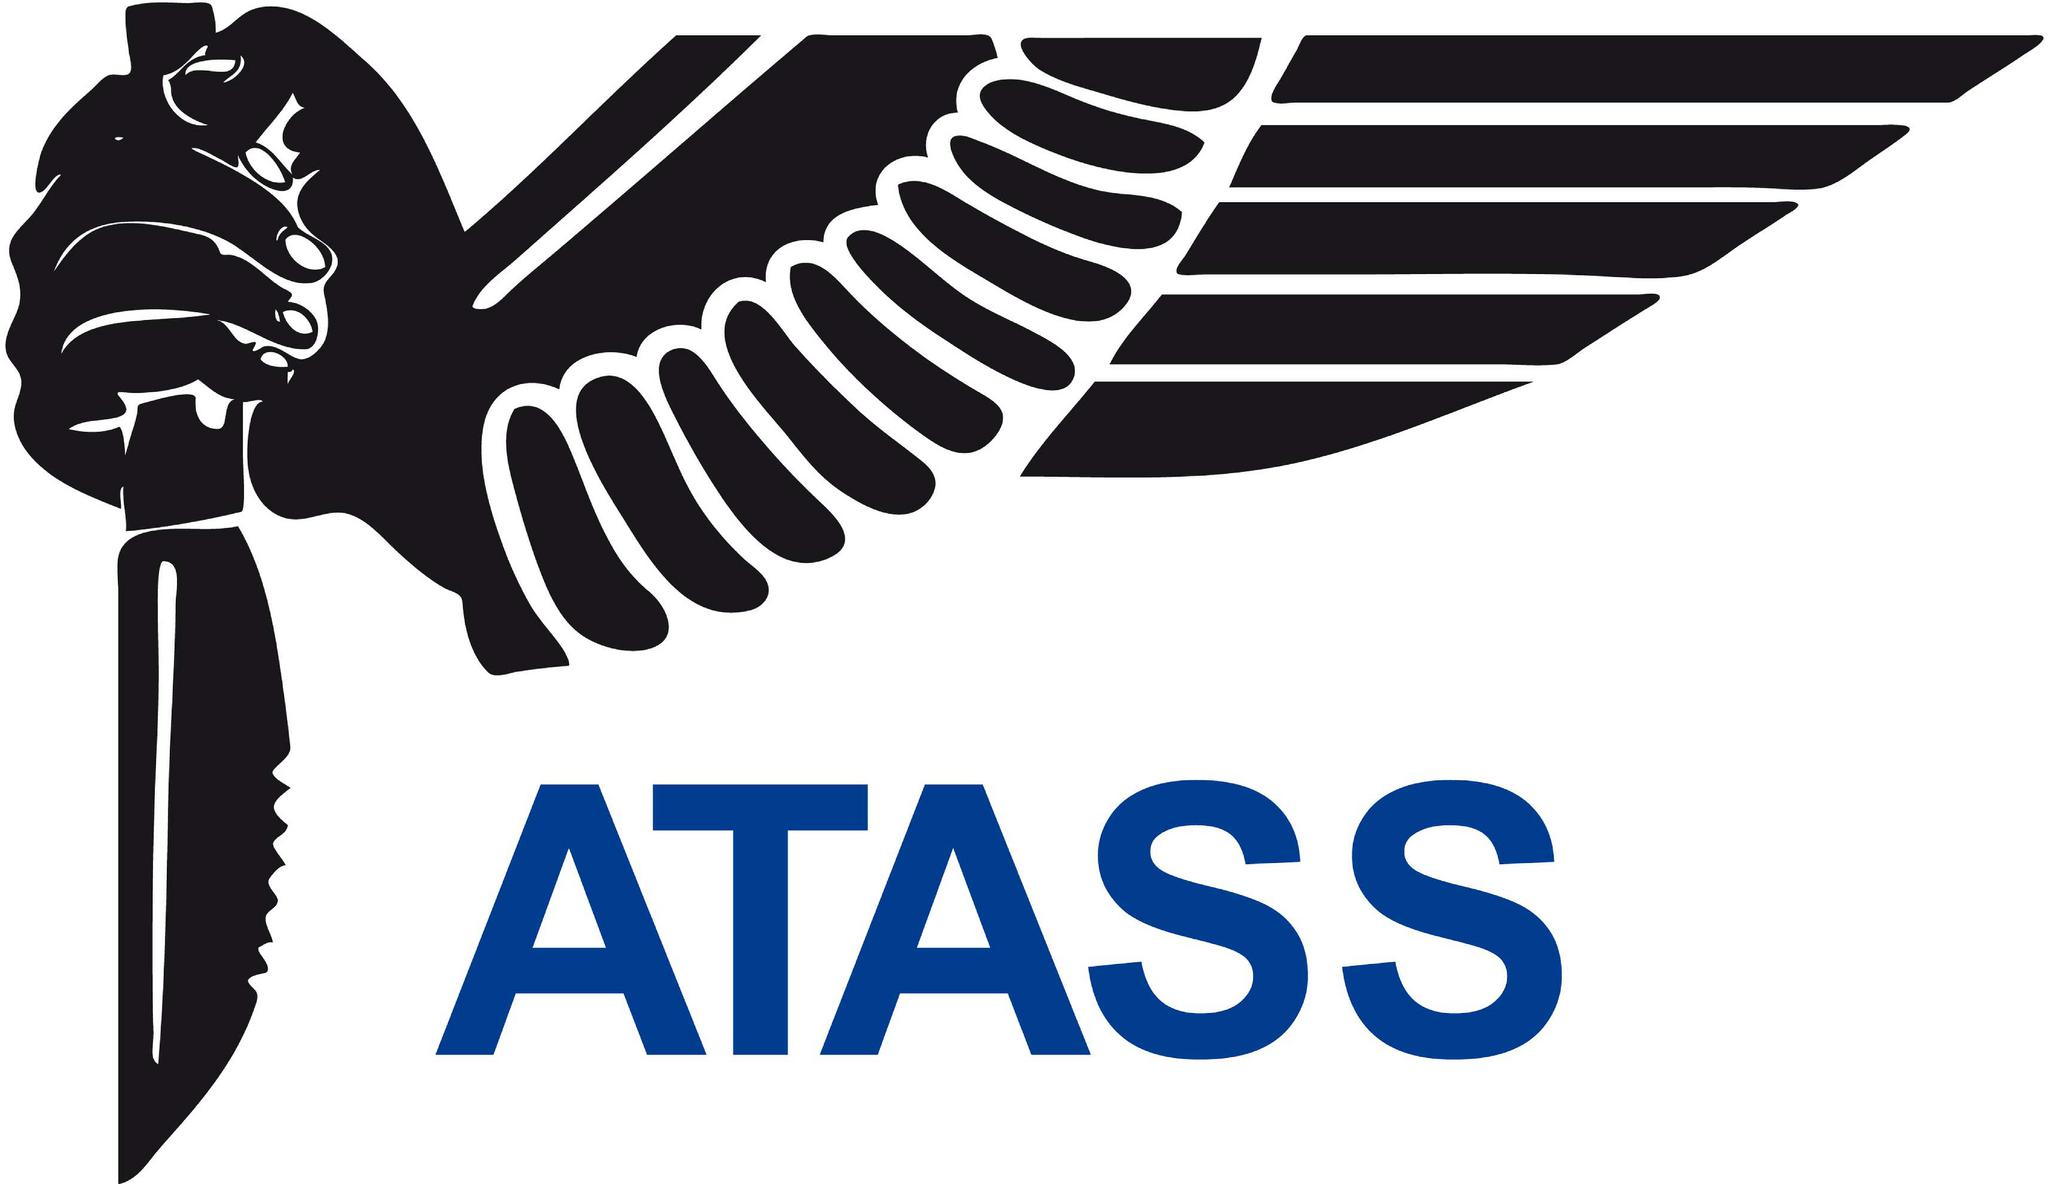 ATASS-Advanced Tactical Airborne Systems and Services GmbH